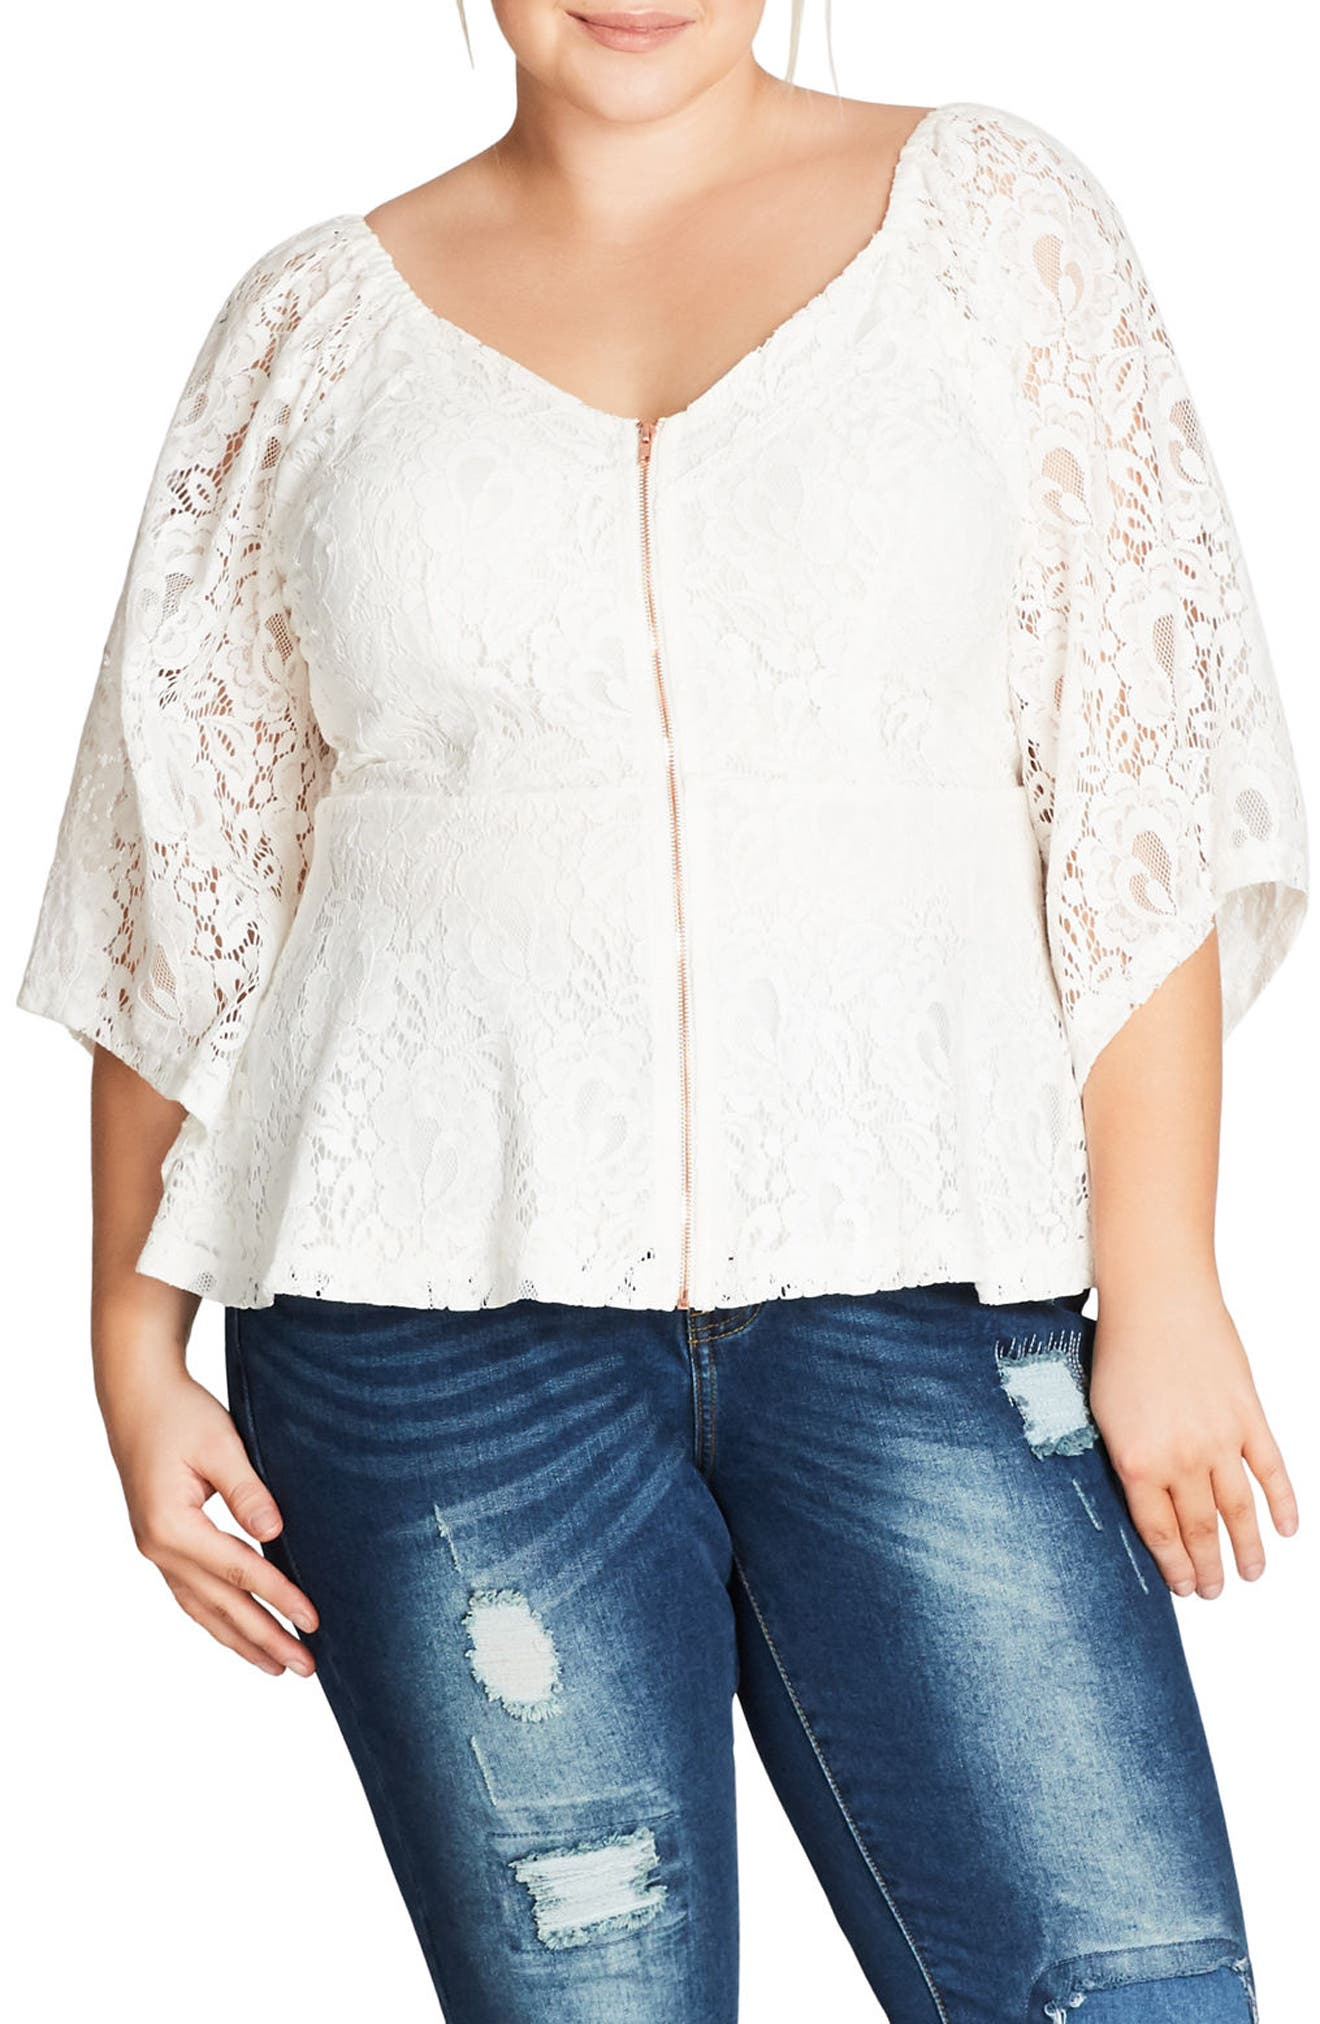 Main Image - City Chic Sheer Romance Lace Top (Plus Size)